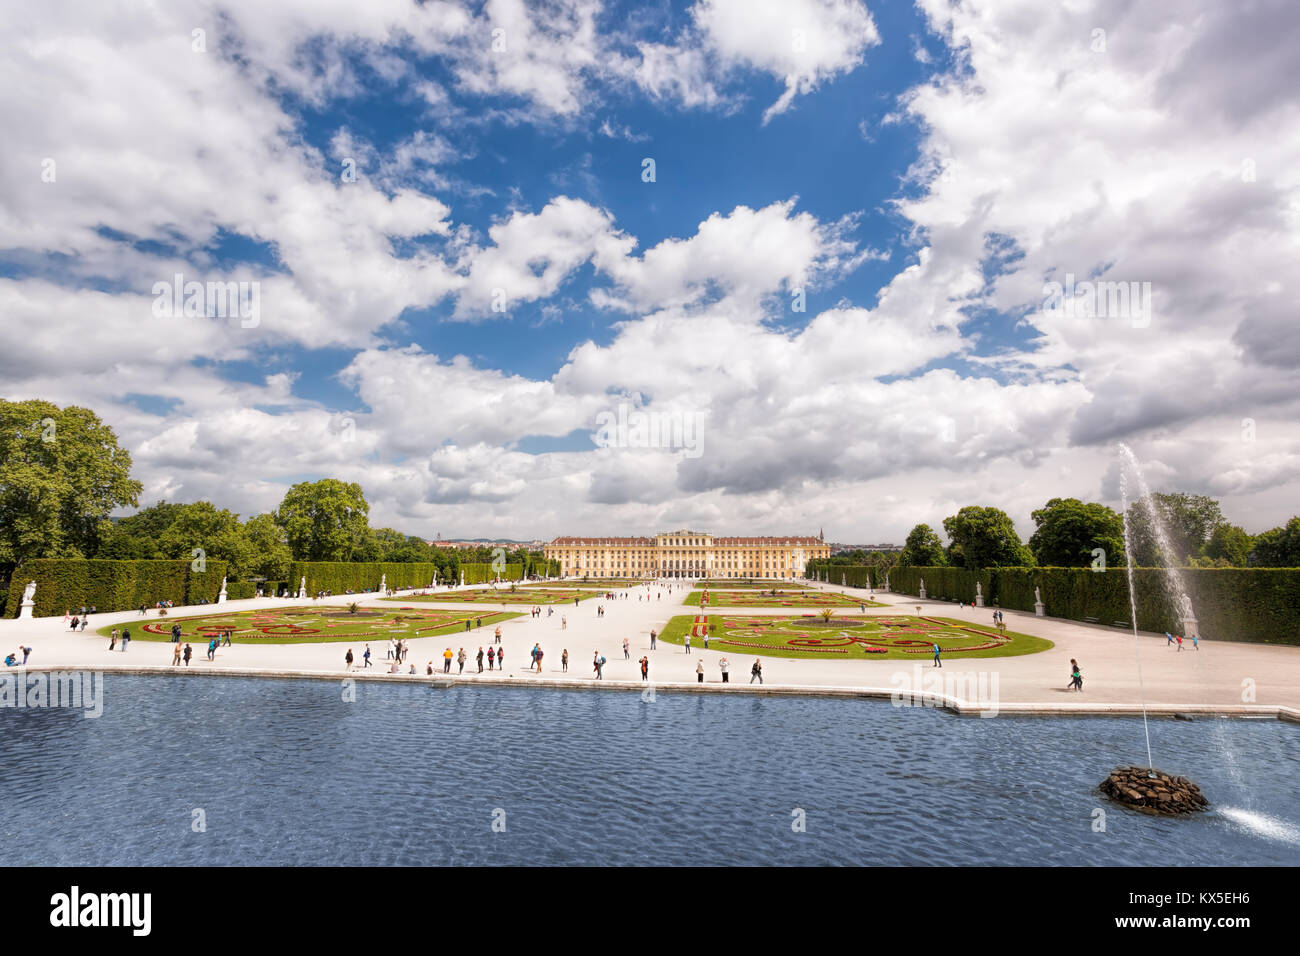 Famous Schonbrunn Palace with lake in the garden, Vienna, Austria Stock Photo